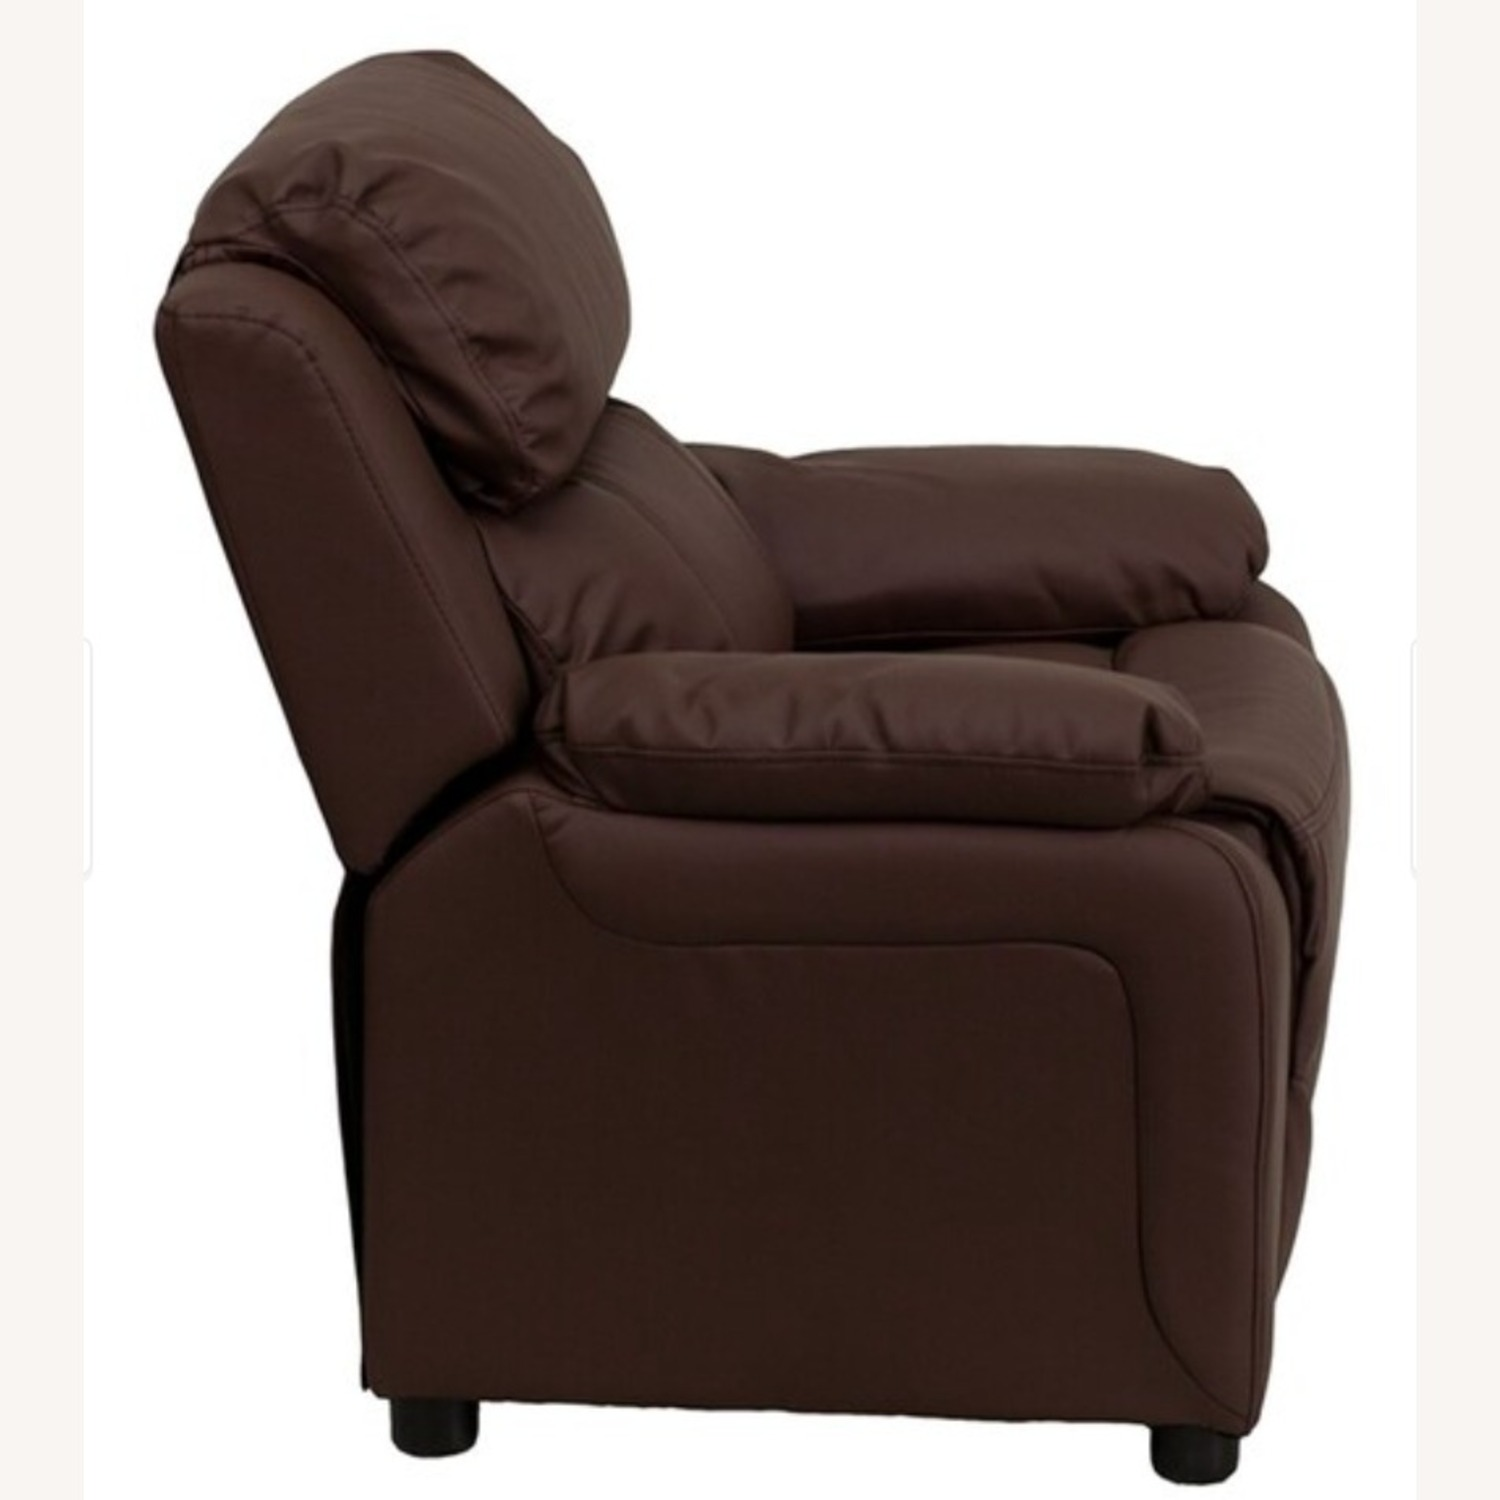 Wayfair Kids Leather Recliner - image-2